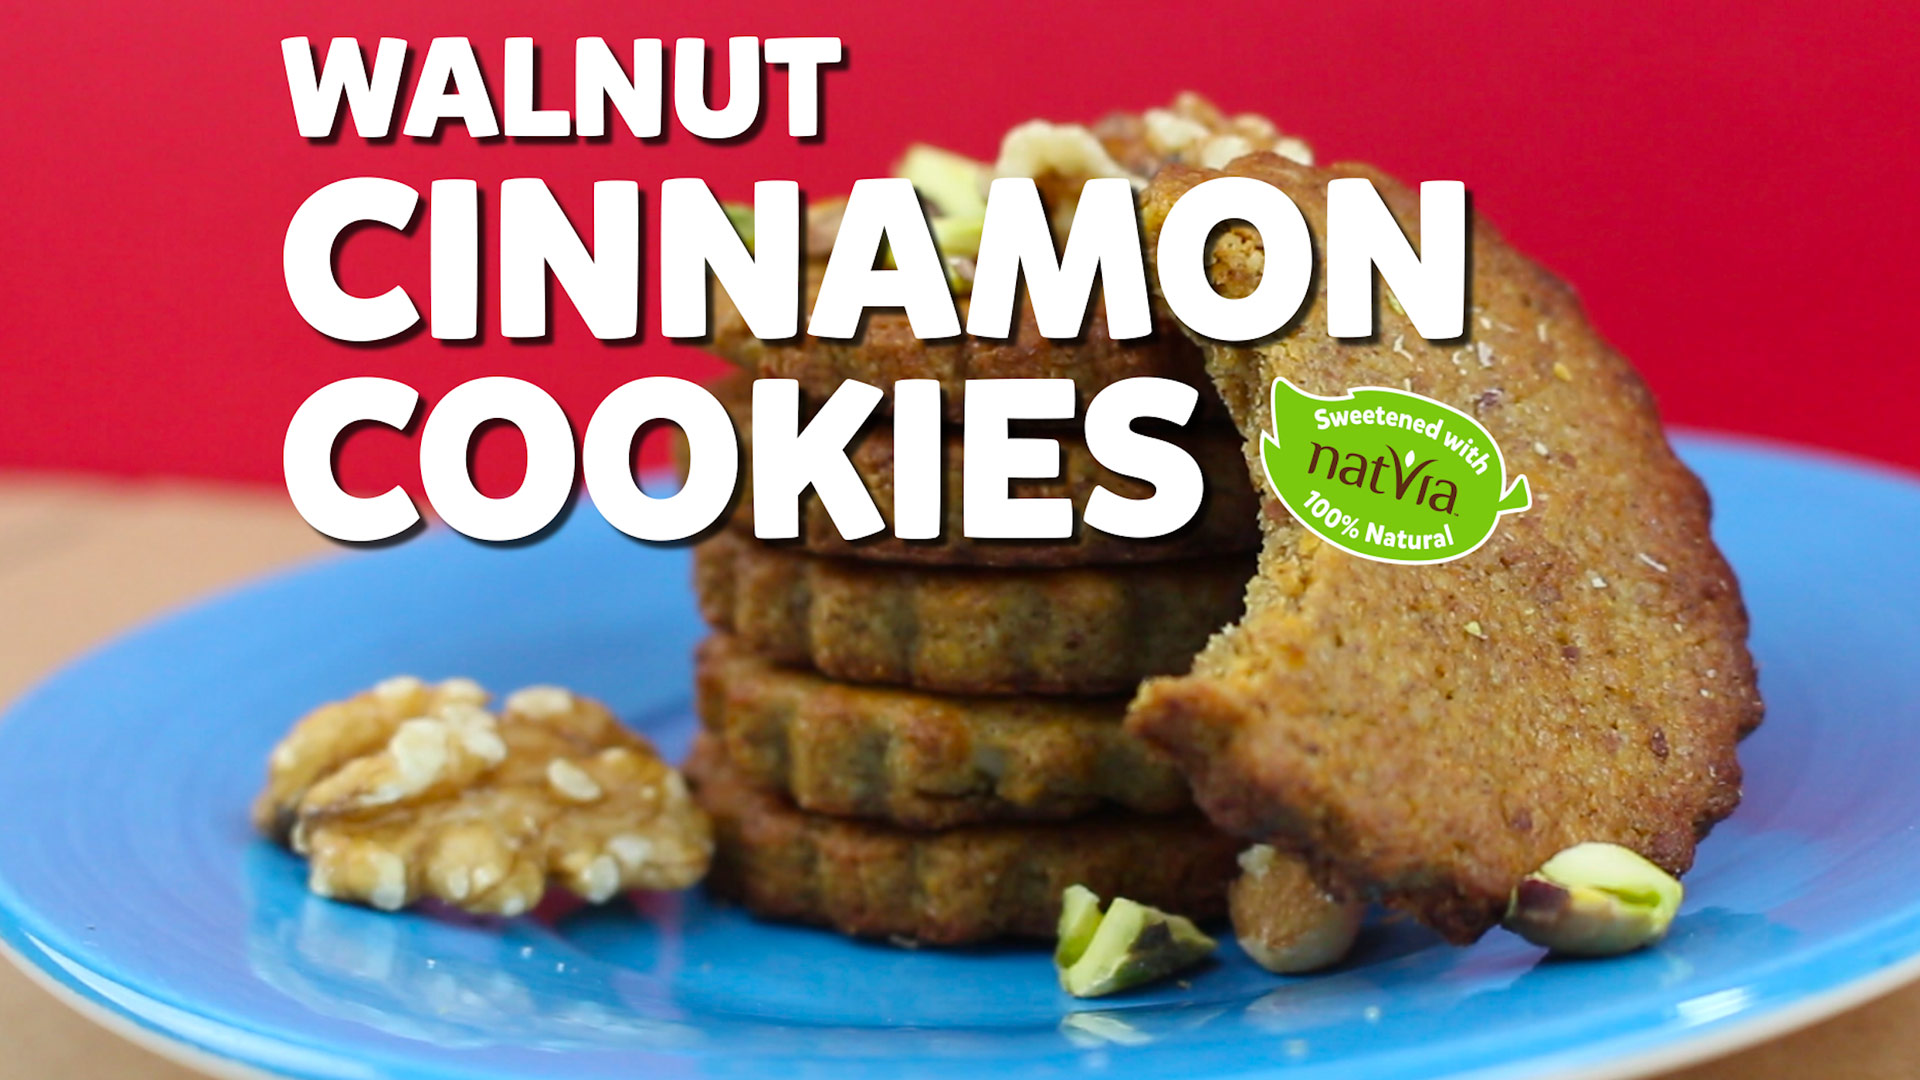 walnut cinnamon cookies